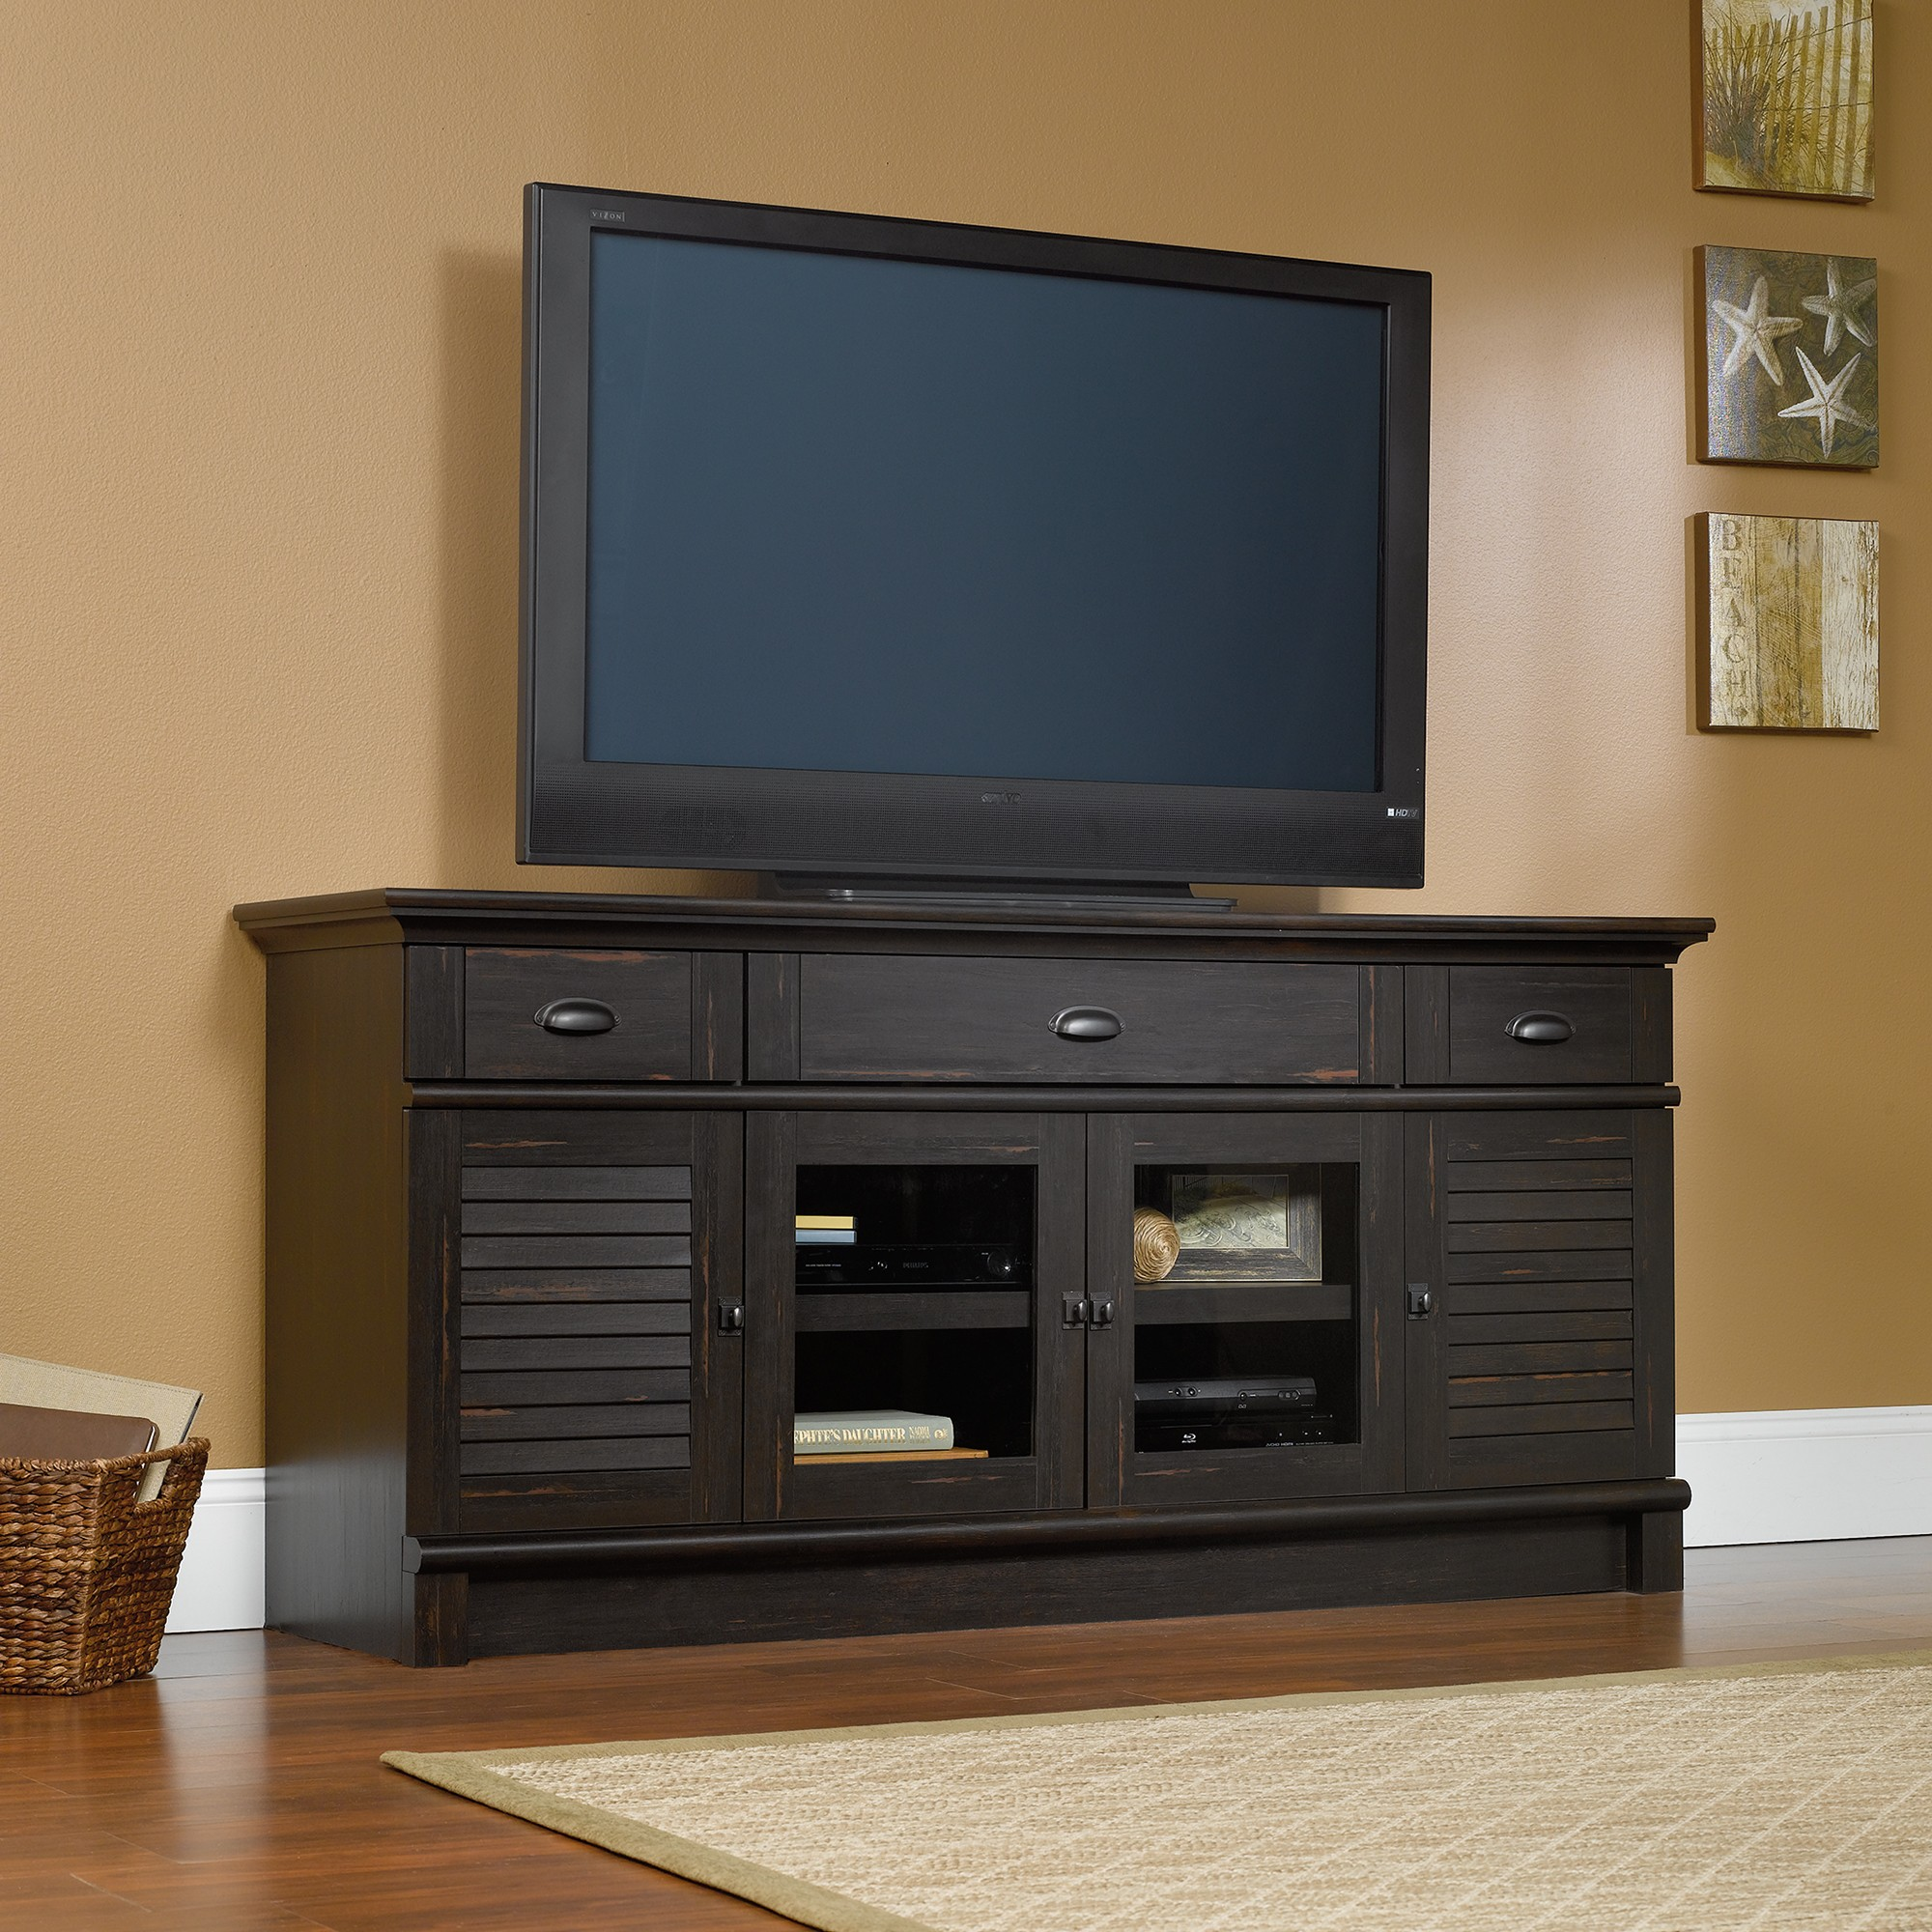 Sauder 415374 Harbor View Credenza Tv Stand The Furniture Co